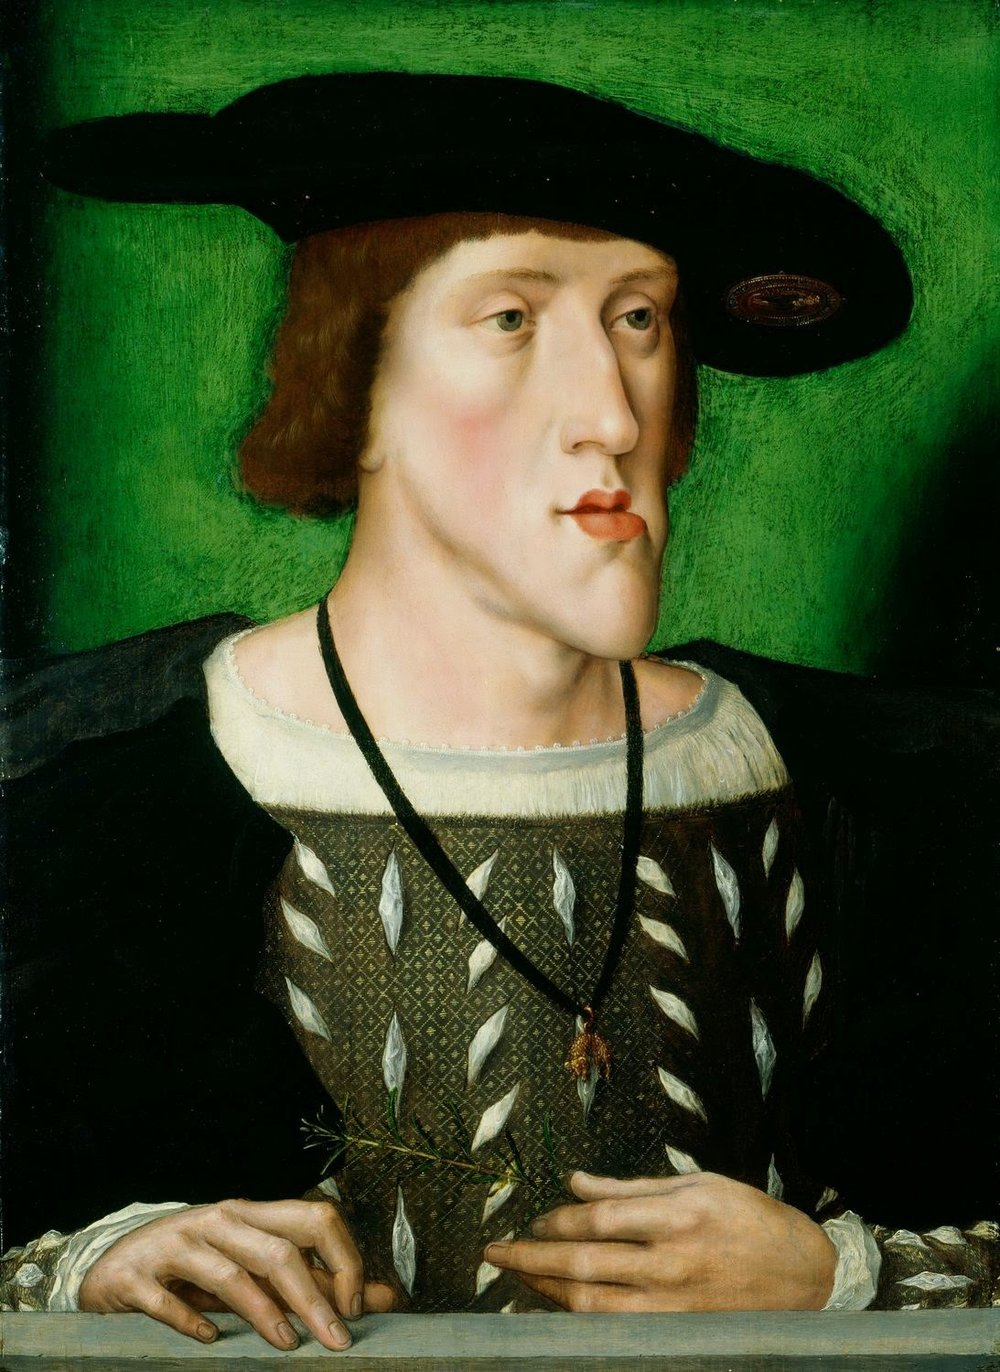 Portrait of Charles V from 1514-16 by an unknown Flemish artist